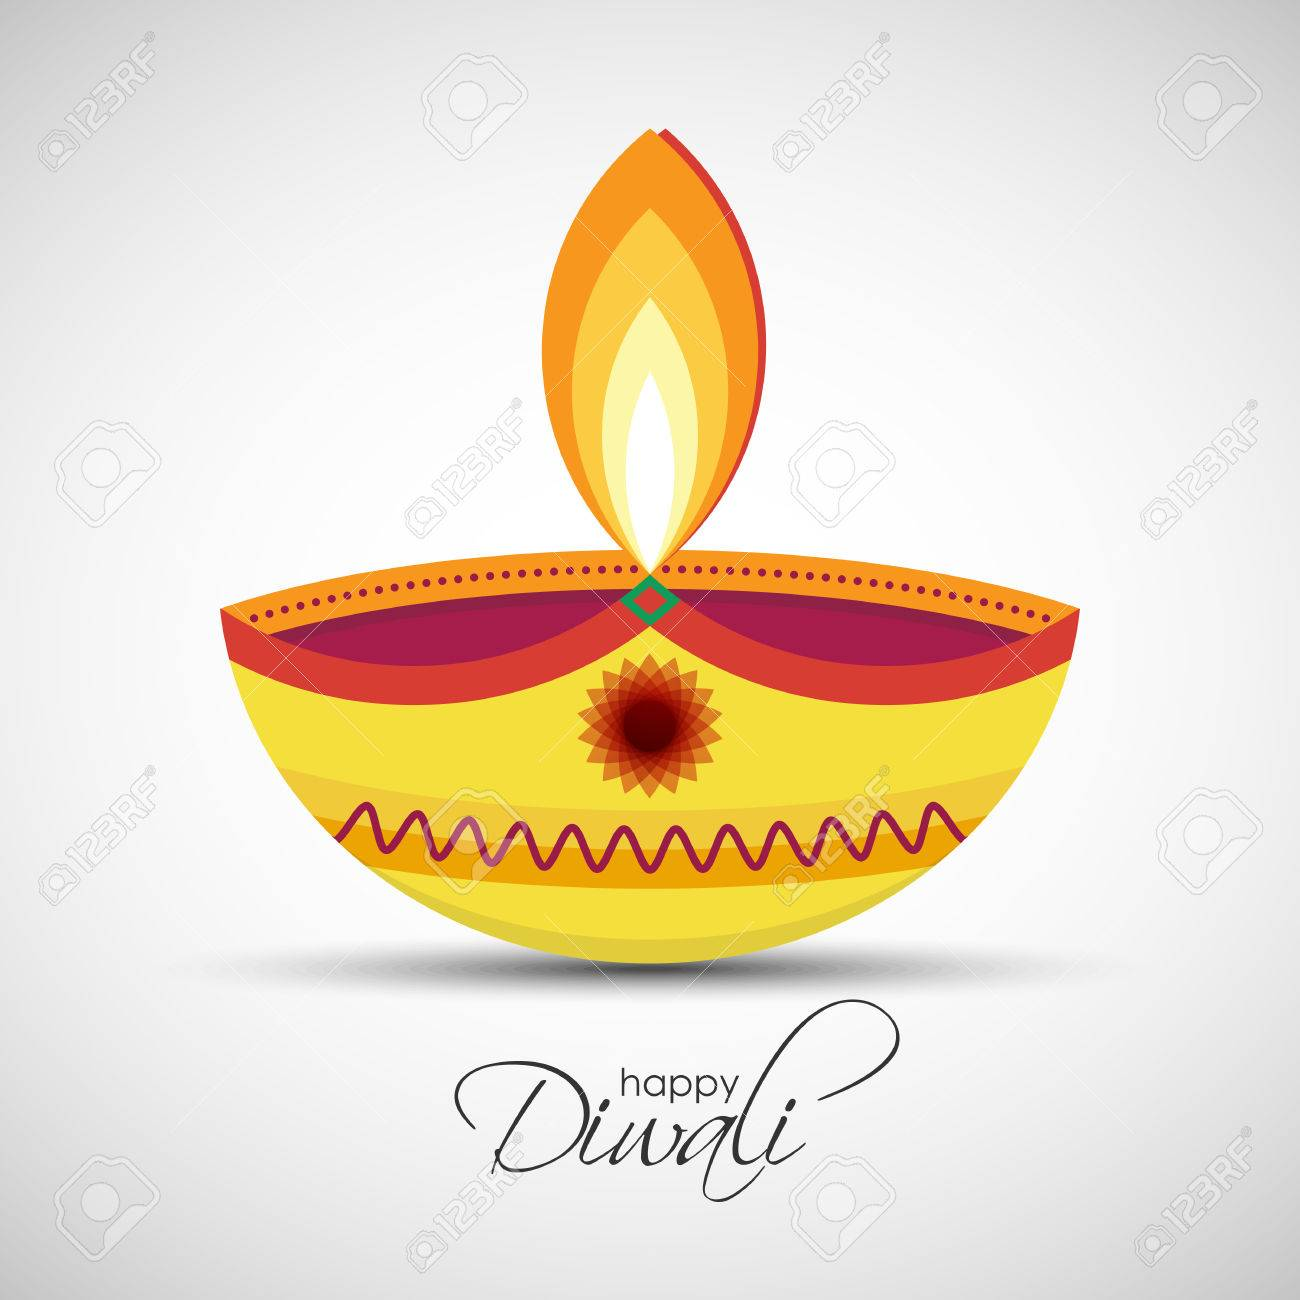 Festival Of Lights Deepavali Happy Diwali Abstract Background